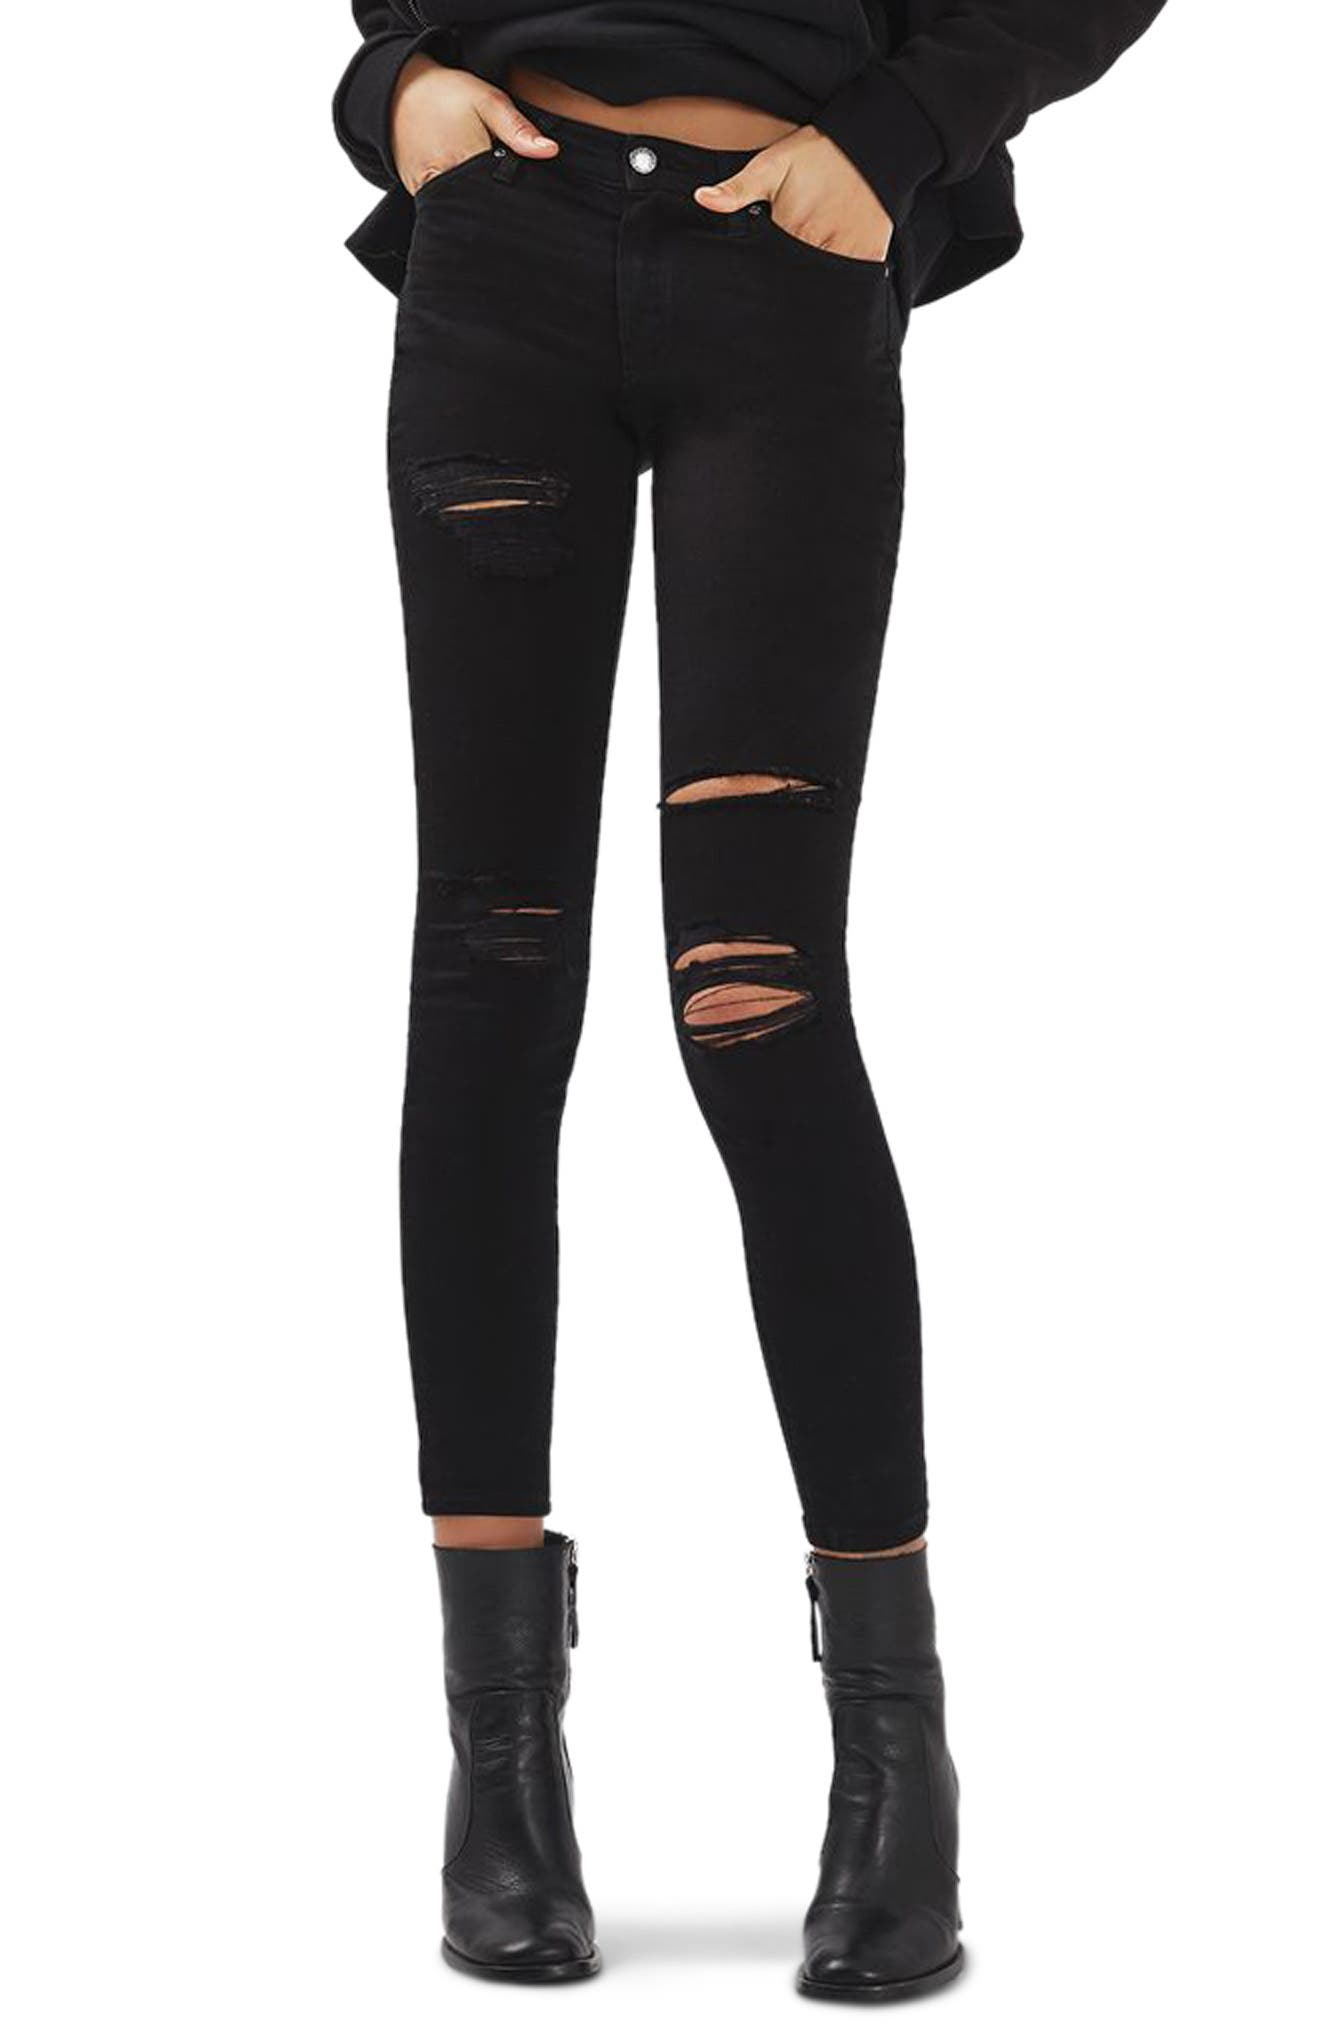 Leigh Super Rip Skinny Jeans,                         Main,                         color, Black